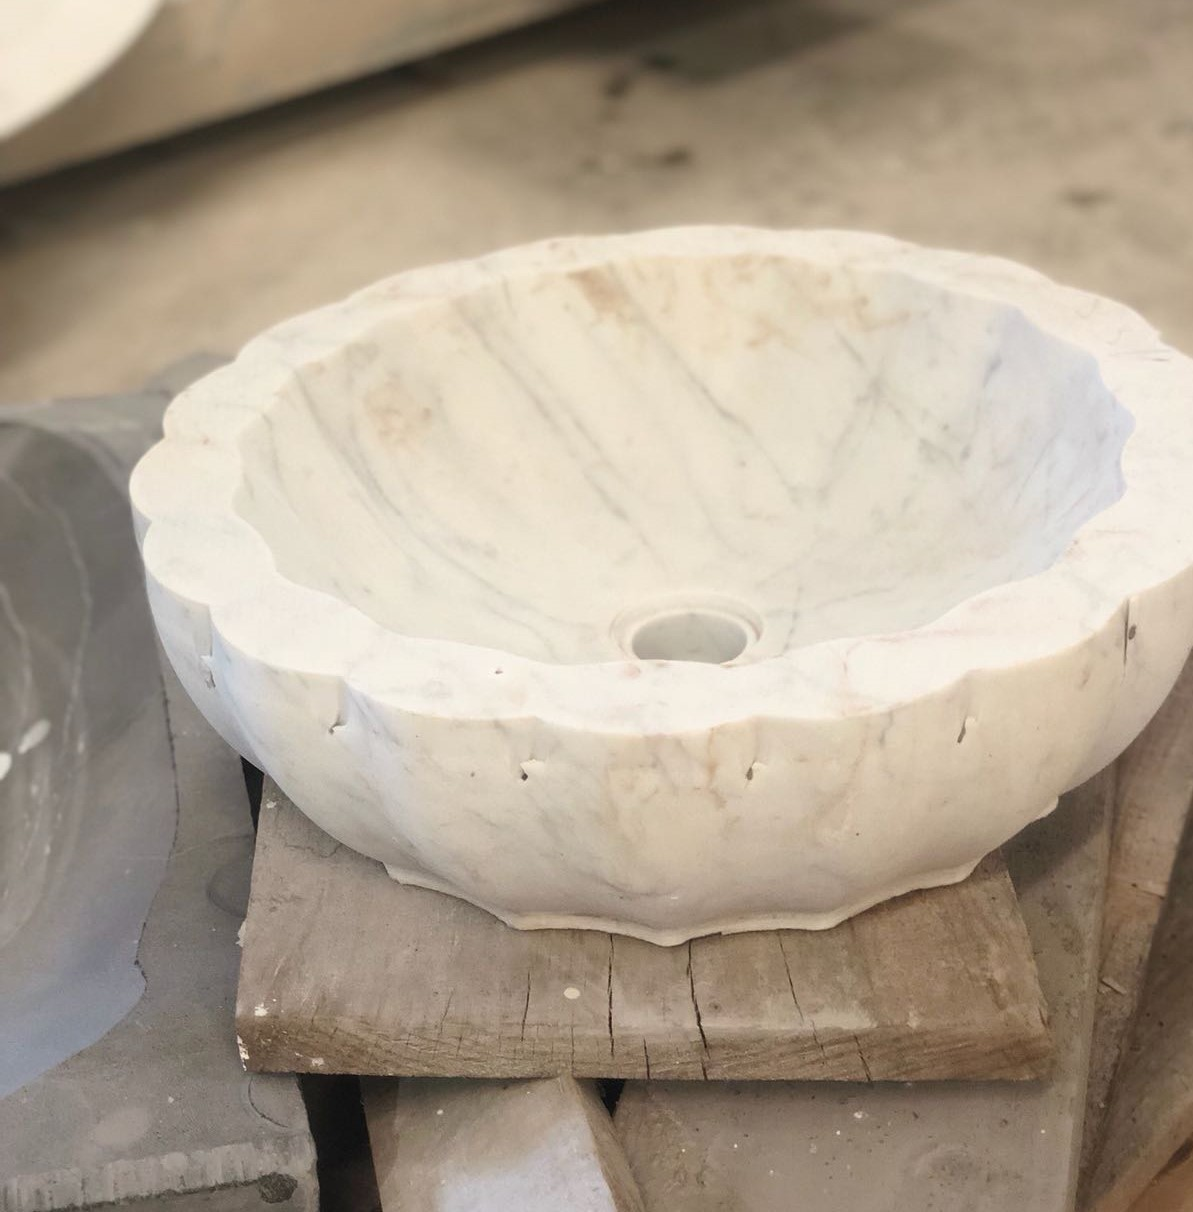 vessel sinks, maison valentina, marble, craftsman, carrara marble, nero marquina marble vessel sinks A Masterpiece is Born–Sneak Peak on Our Vessel Sinks' Production! Lotus Vessel Sink image